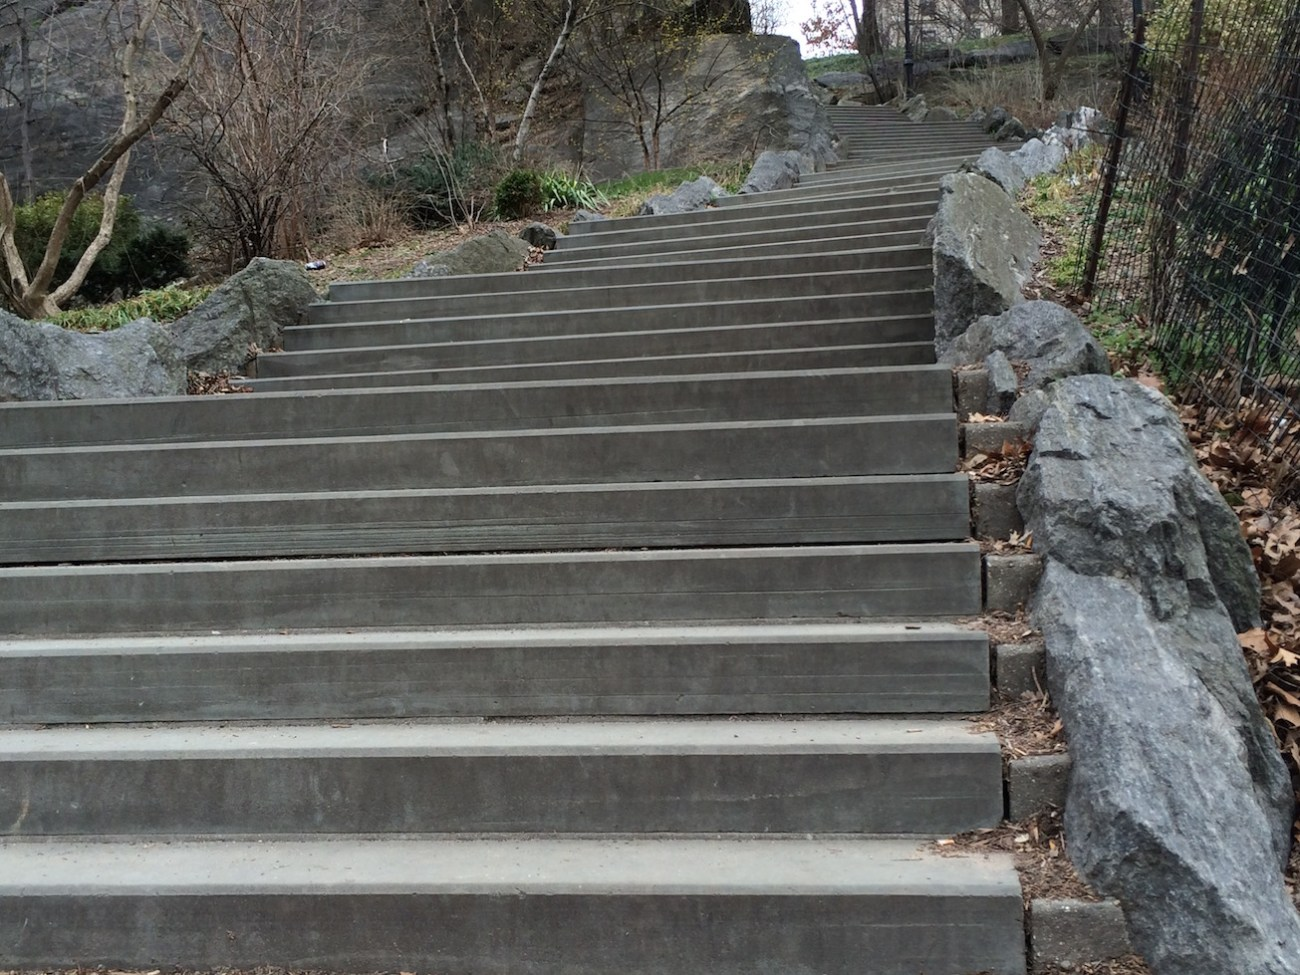 Morningside Park Stair Workout 23